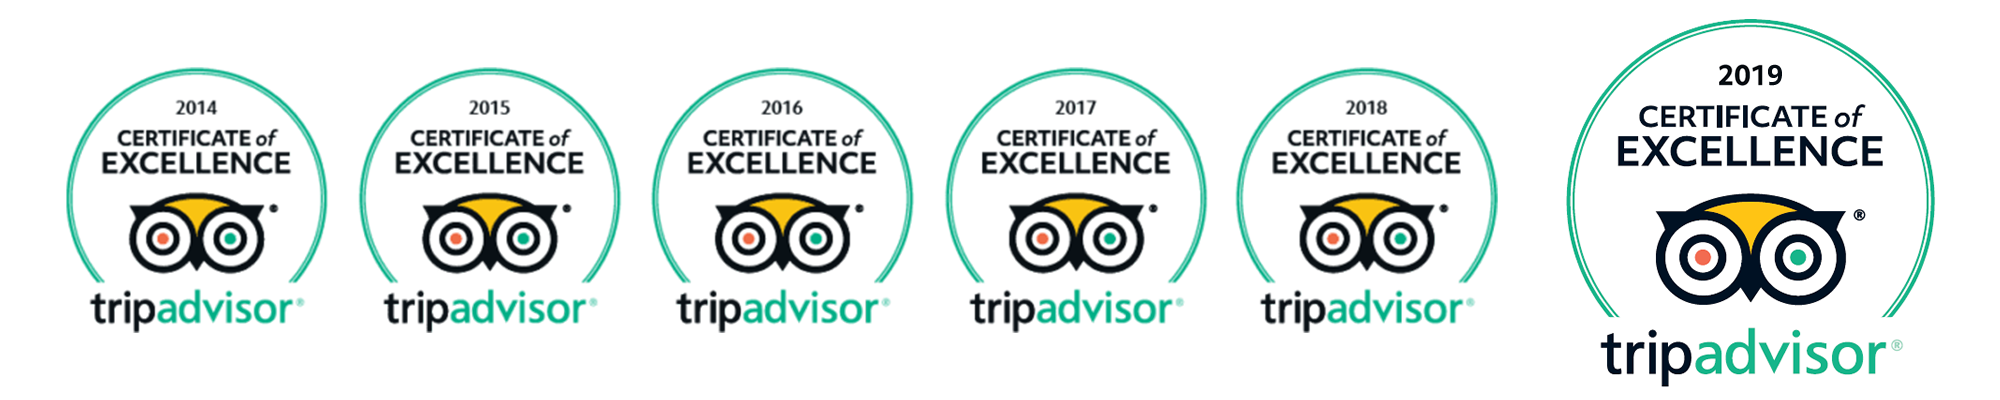 tripadvisor-certificate-of-excellence-cjsushis